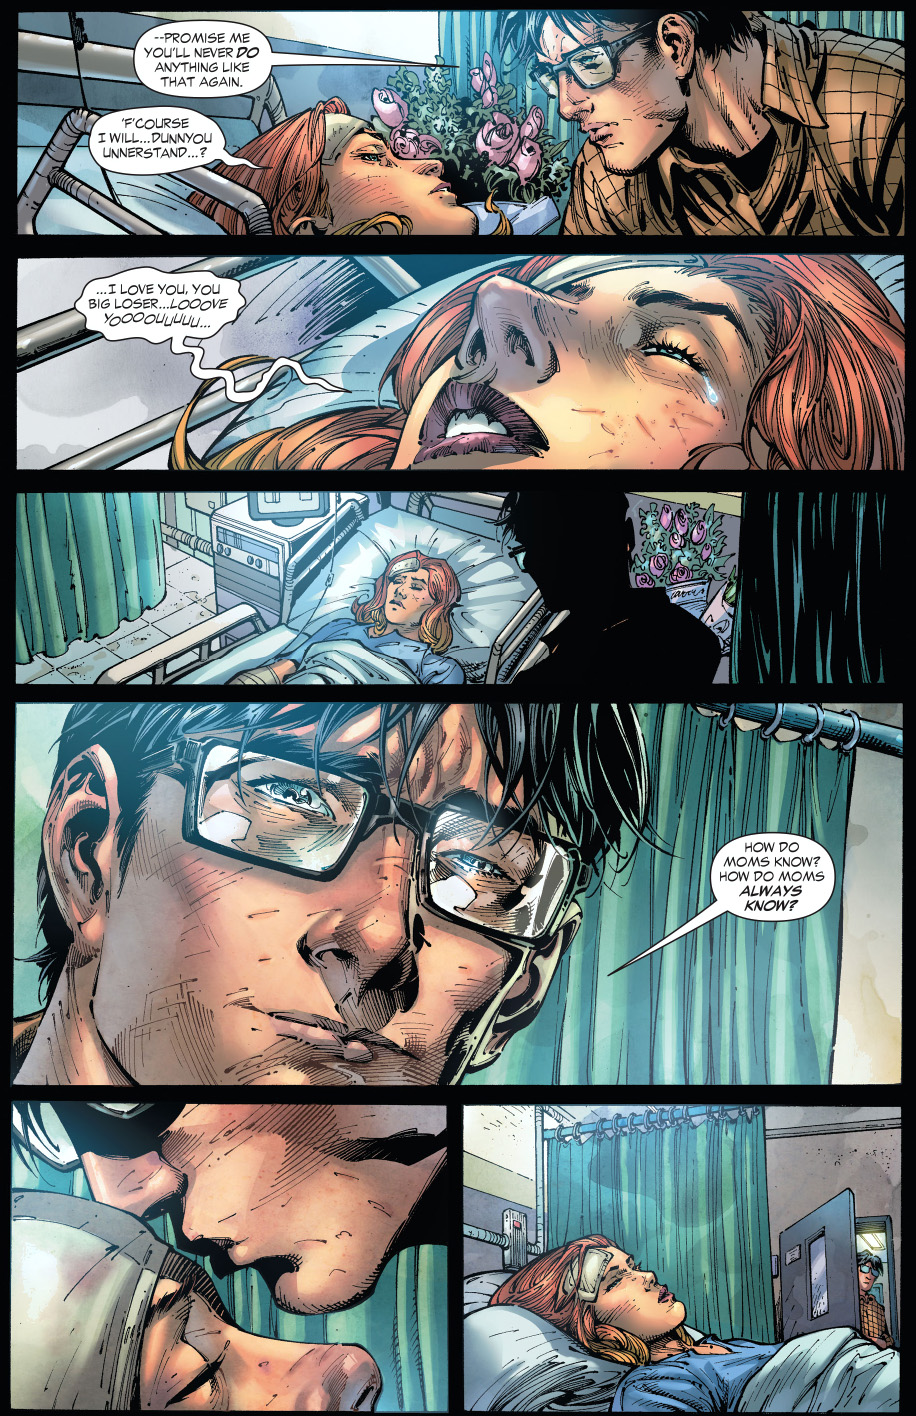 lisa lasalle loves clark kent